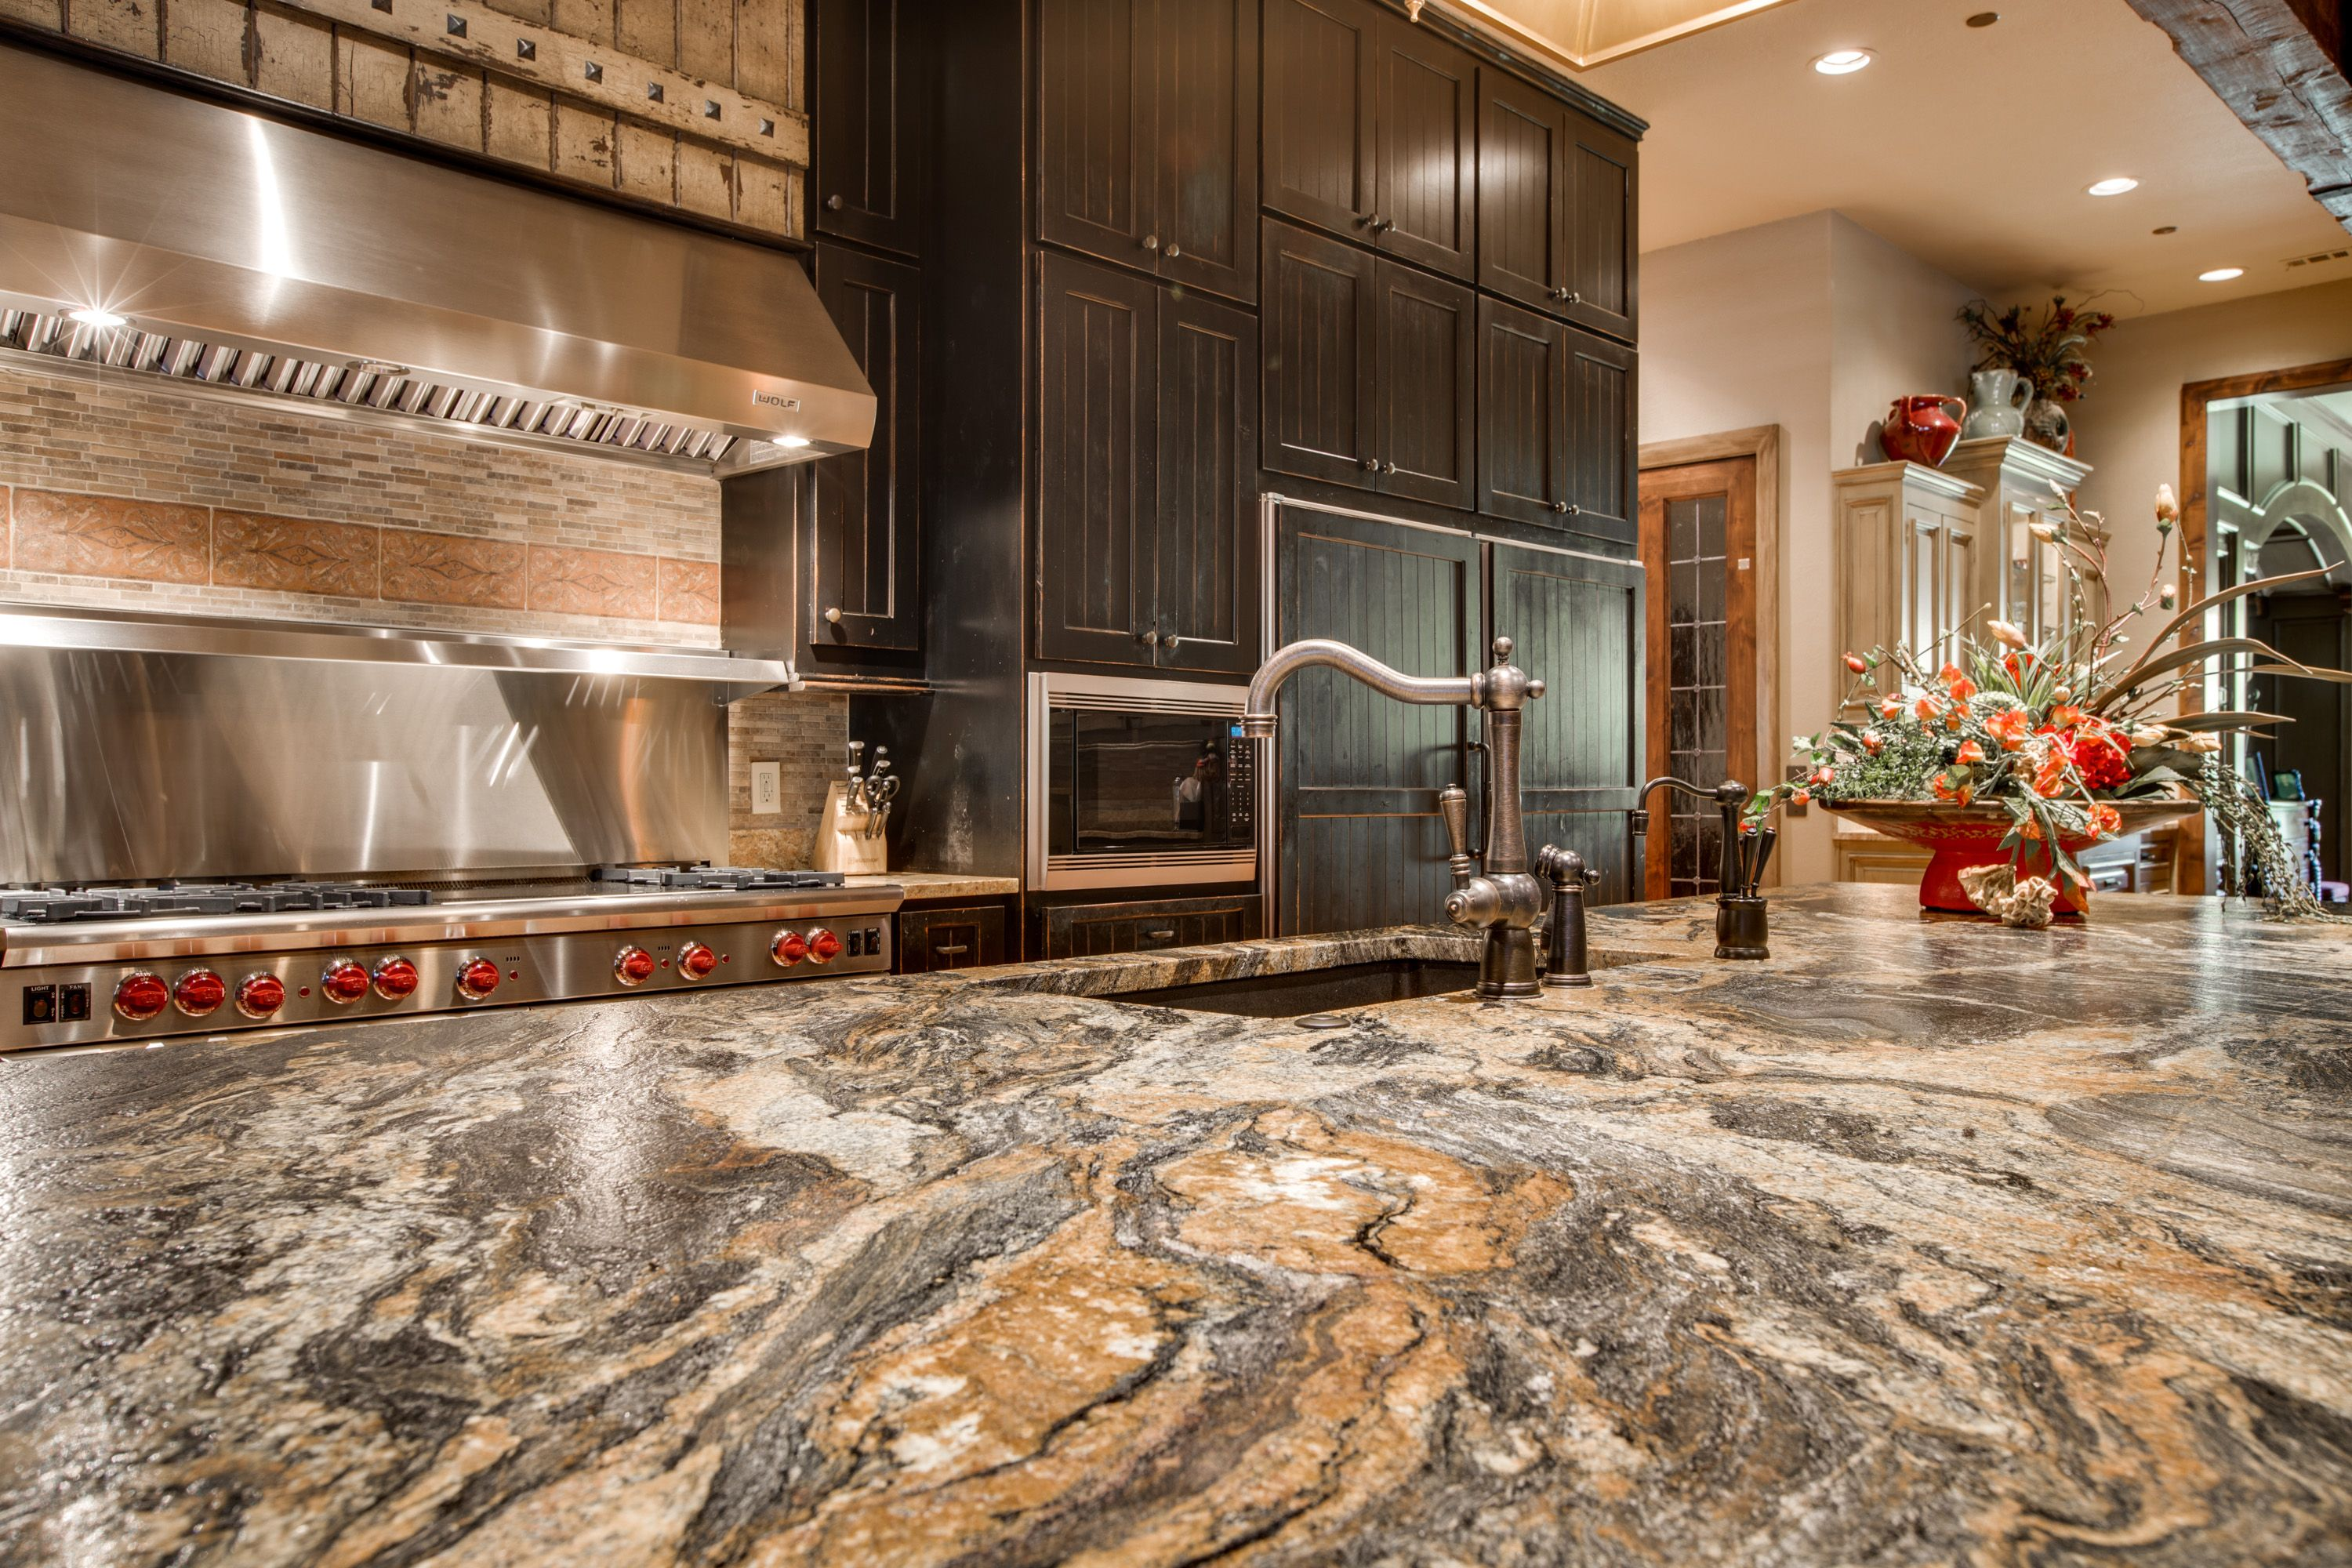 Volcano Granite In A Leather Finish Makes This Rustic Chic Kitchen Look Even More Amazing This Rustic Countertops Kitchen Remodel Design Rustic Chic Kitchen